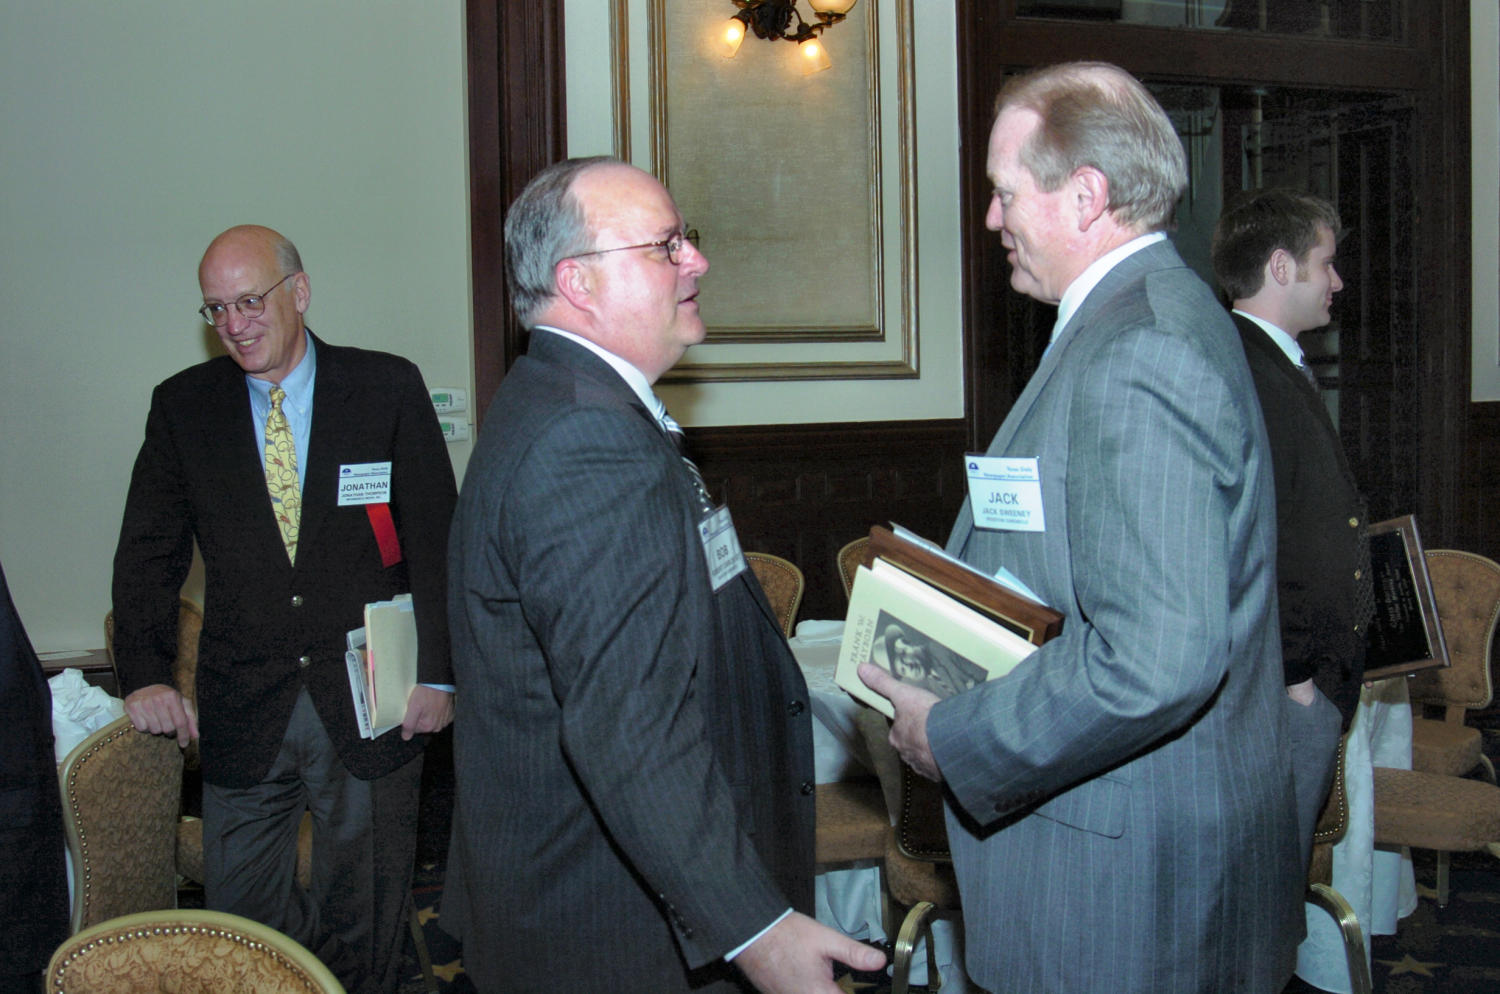 "[Jack Sweeney and Bob Carlquist], Photograph of Jack Sweeney (right) stopping to chat with Bob Carlquist during the 2005 Texas Daily News Association annual conference, held at the Driskell Hotel in Austin. Sweeney has been awarded the, ""2004 Mayborn Award for Community Leadership, presented to Jack Sweeney of the Houston Chronicle."" Jonathan Thompson is seen in the background.,"